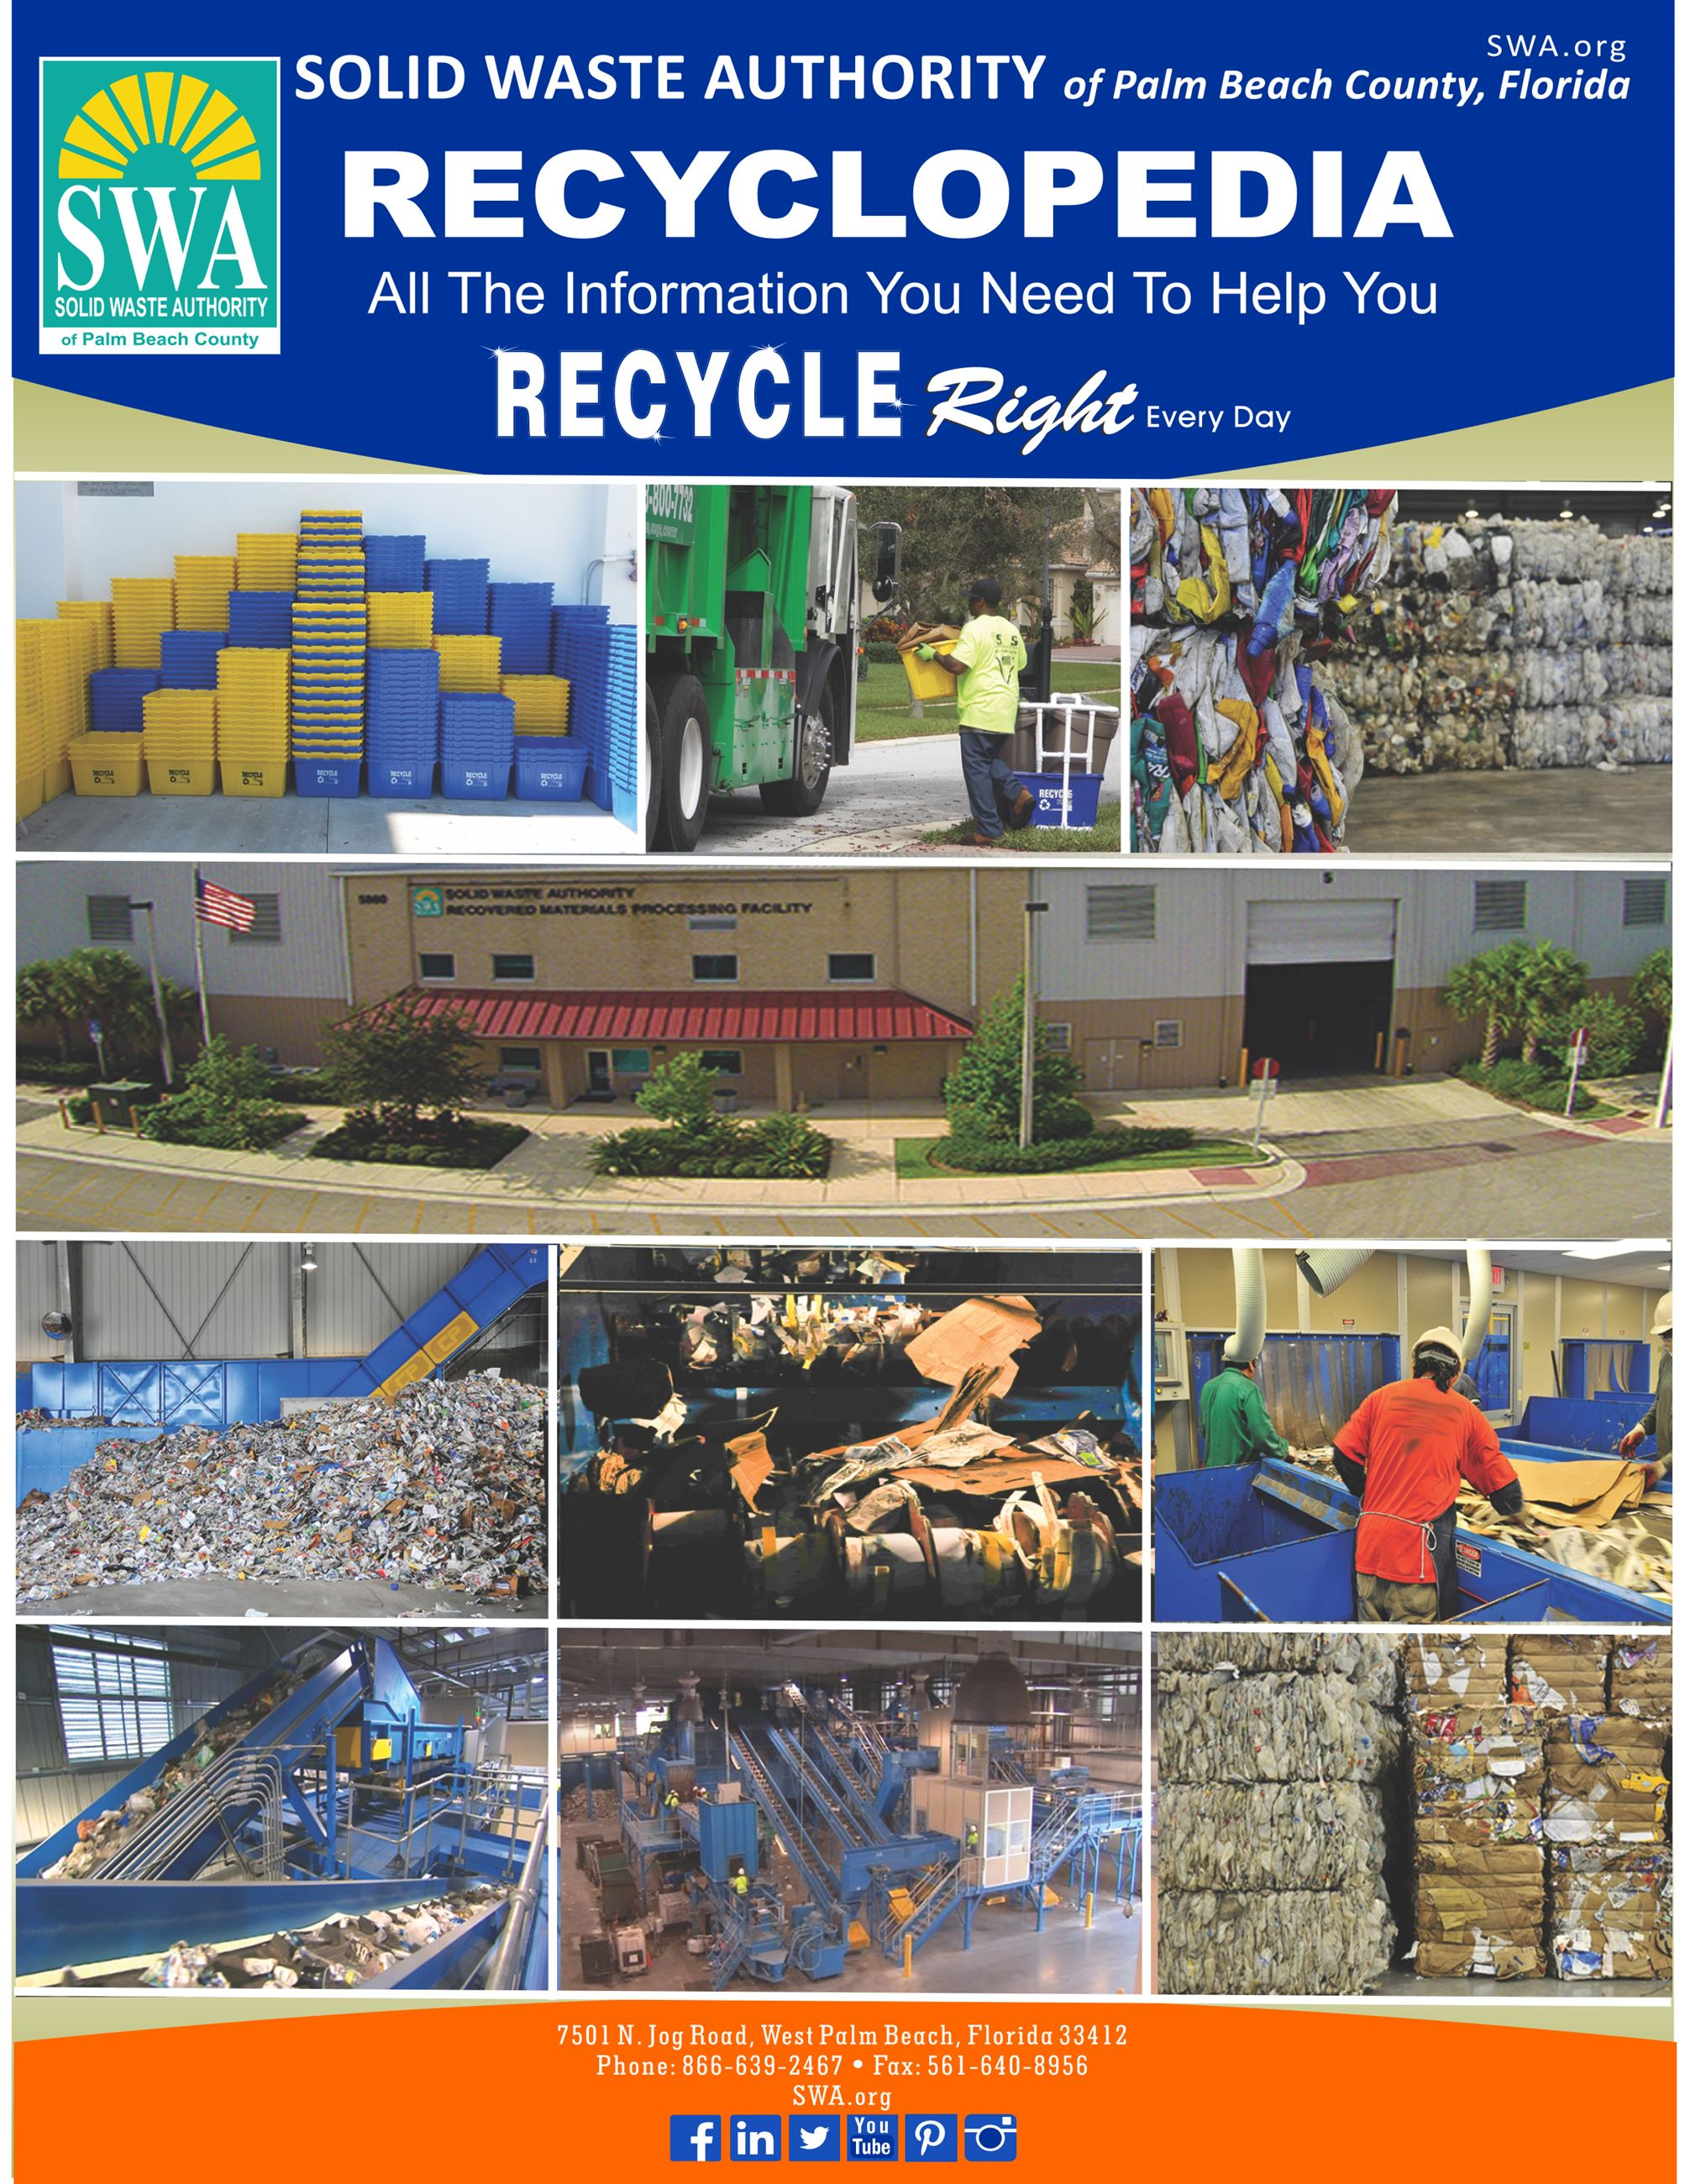 2015 Recyclopedia